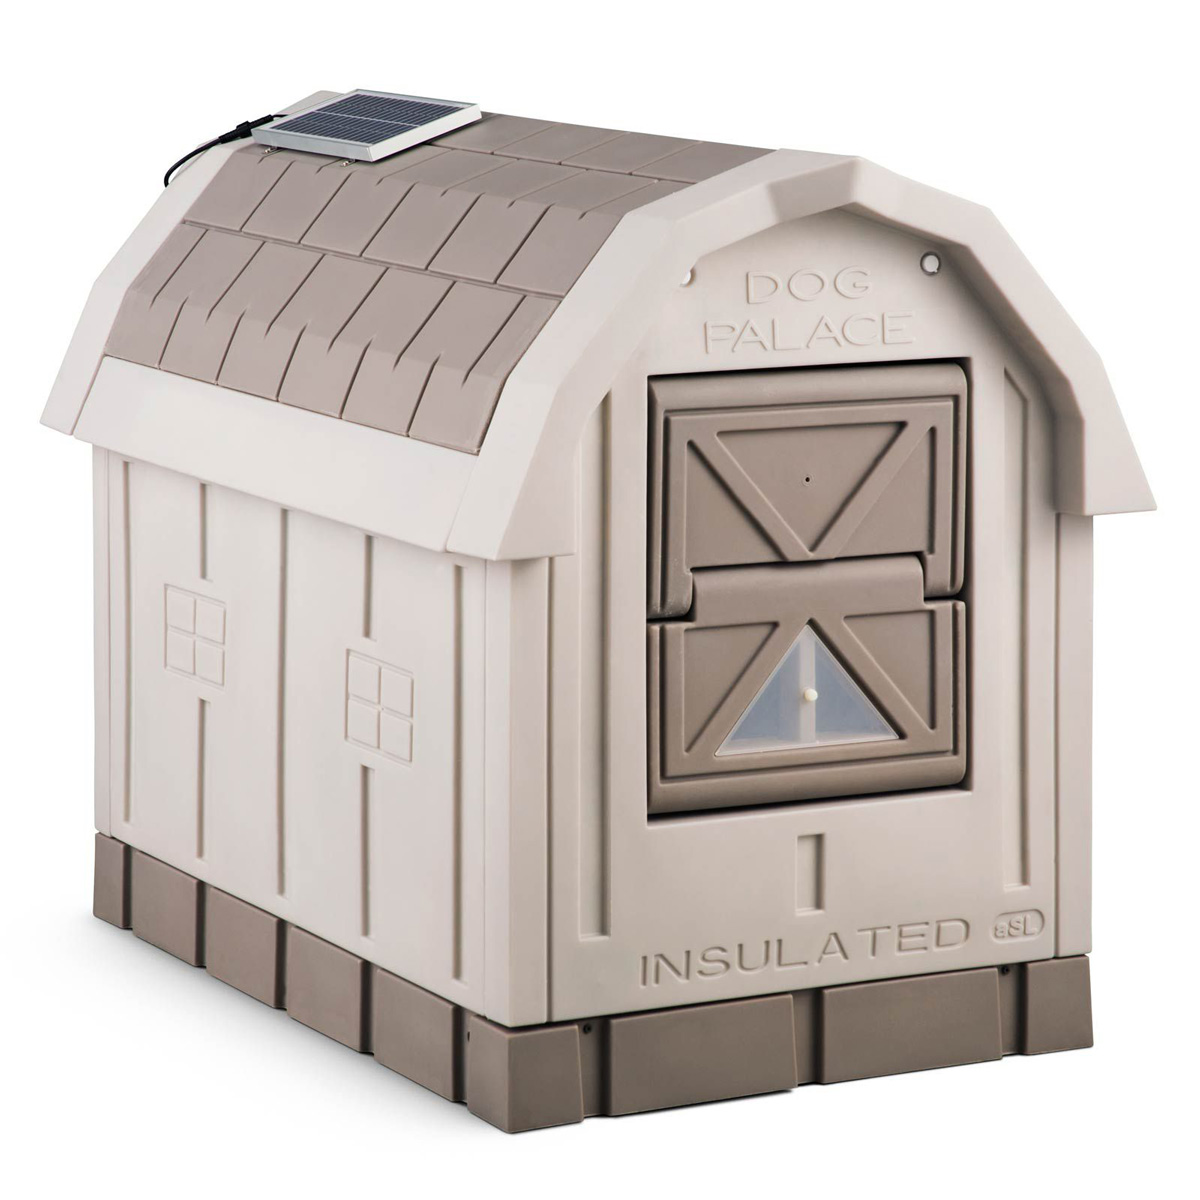 Dog palace insulated dog house the green head for Insulated heated dog house